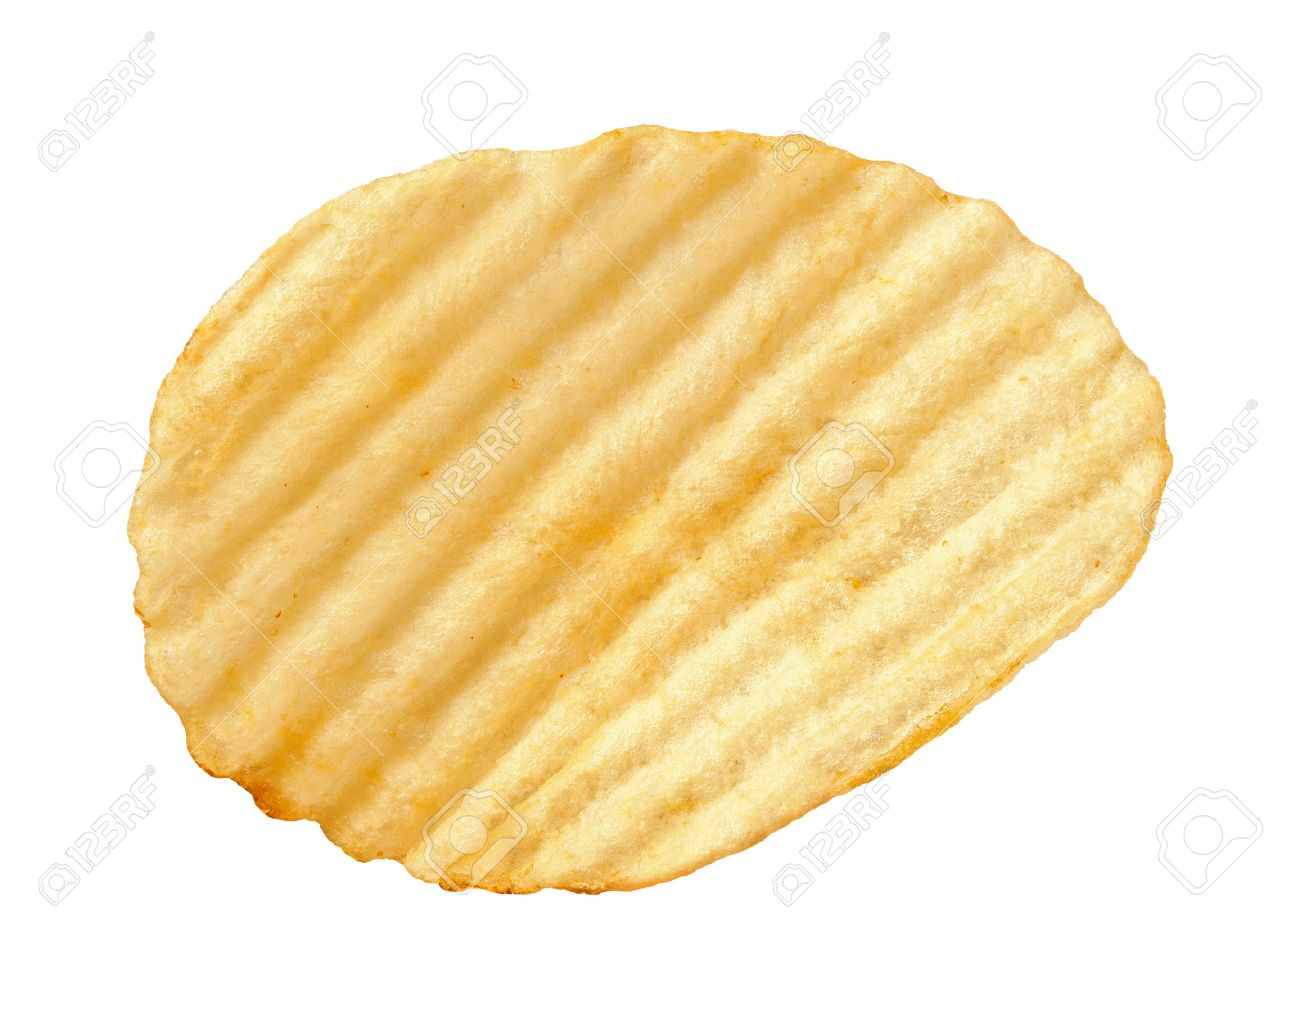 a single wavy potato chip with ridges sometimes called ruffles